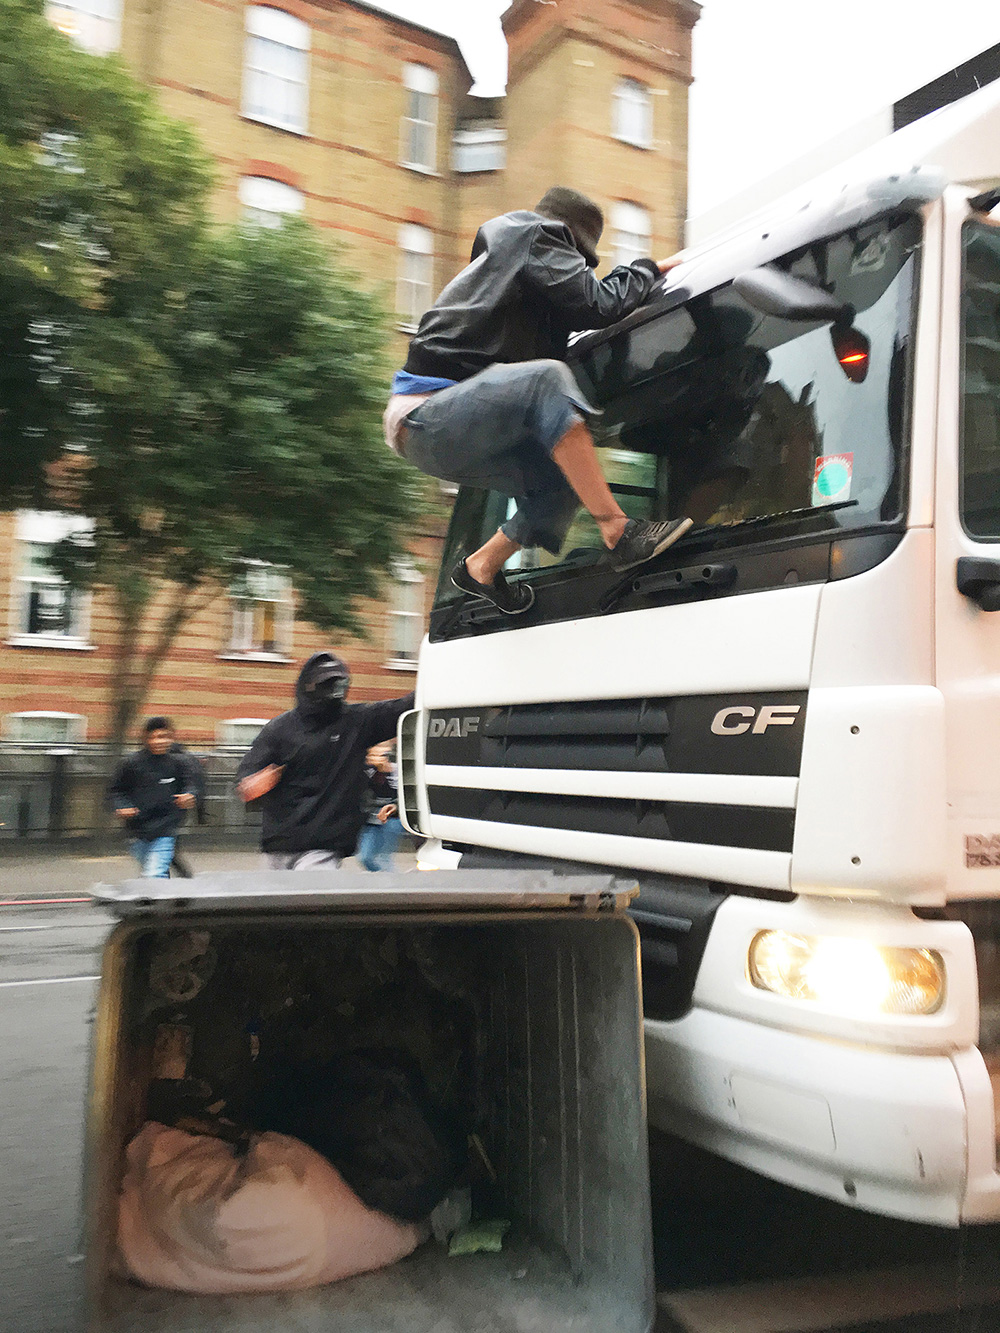 28th July 2017 - Riots broke out in Dalston over the death of Rashan Charles - Shot on iPhone 6S